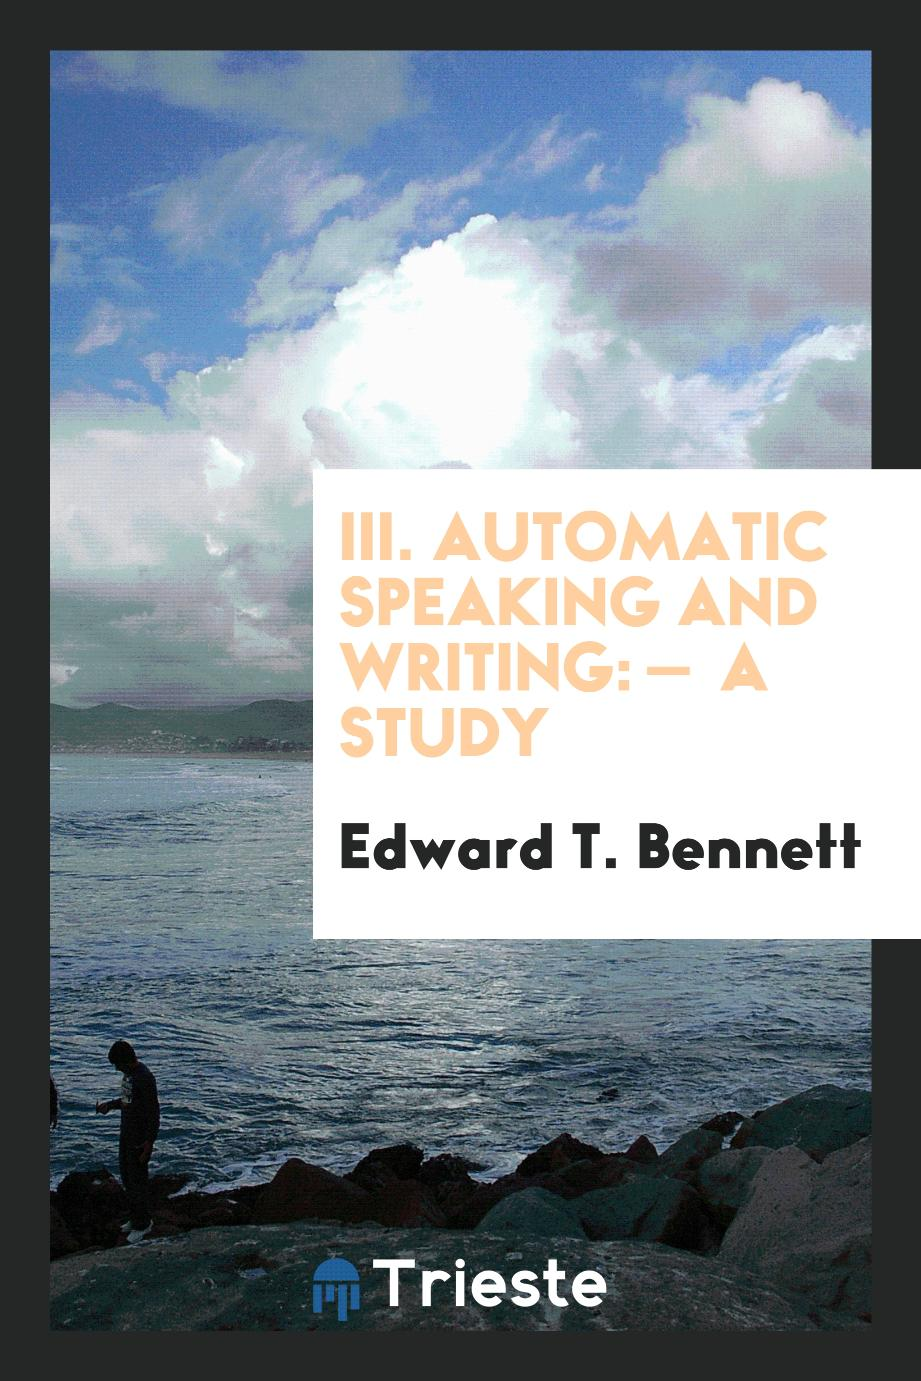 III. Automatic Speaking and Writing: — A Study